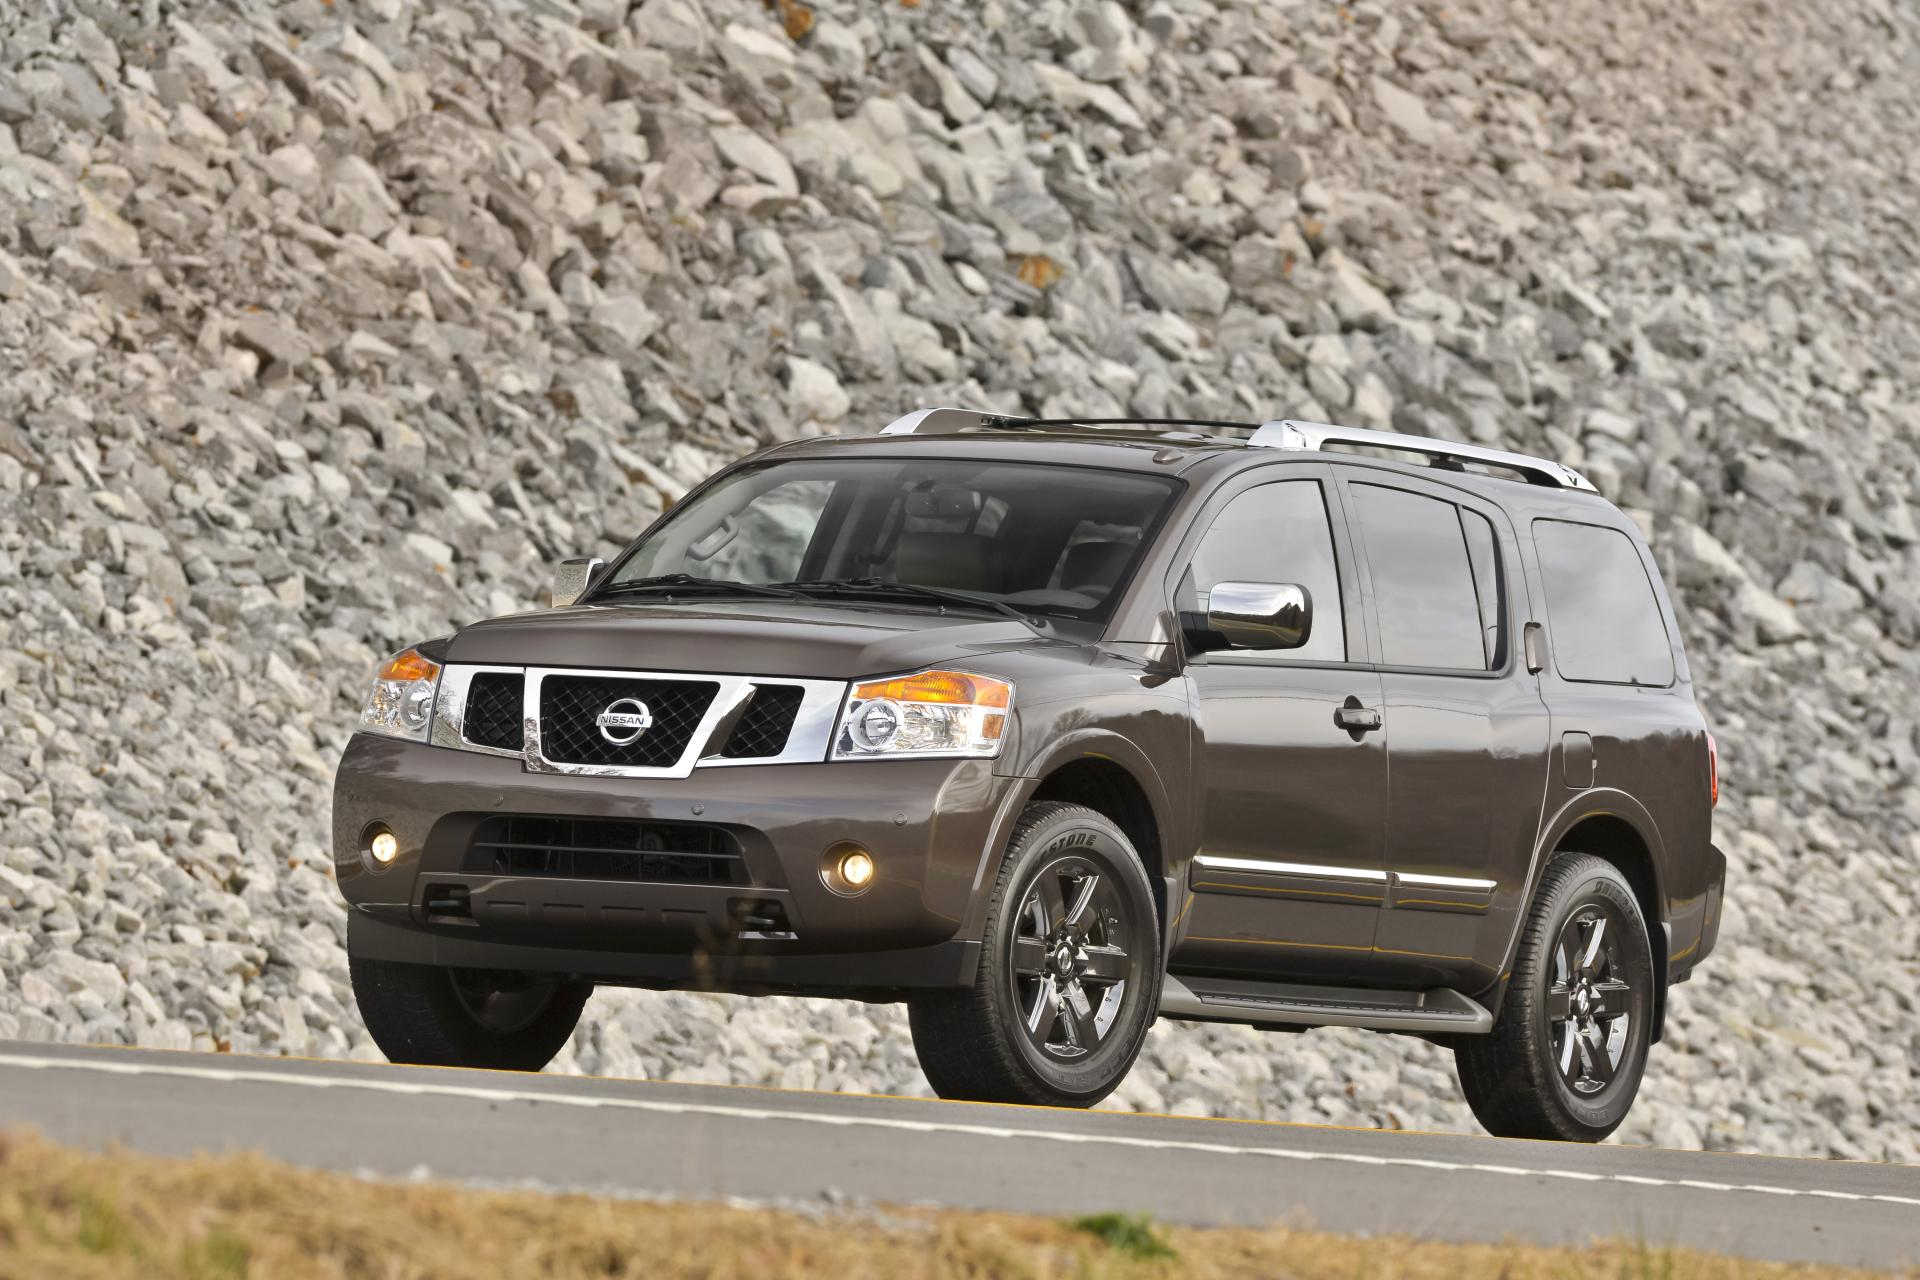 early photo out nissan news leaks official leaked armada wcf